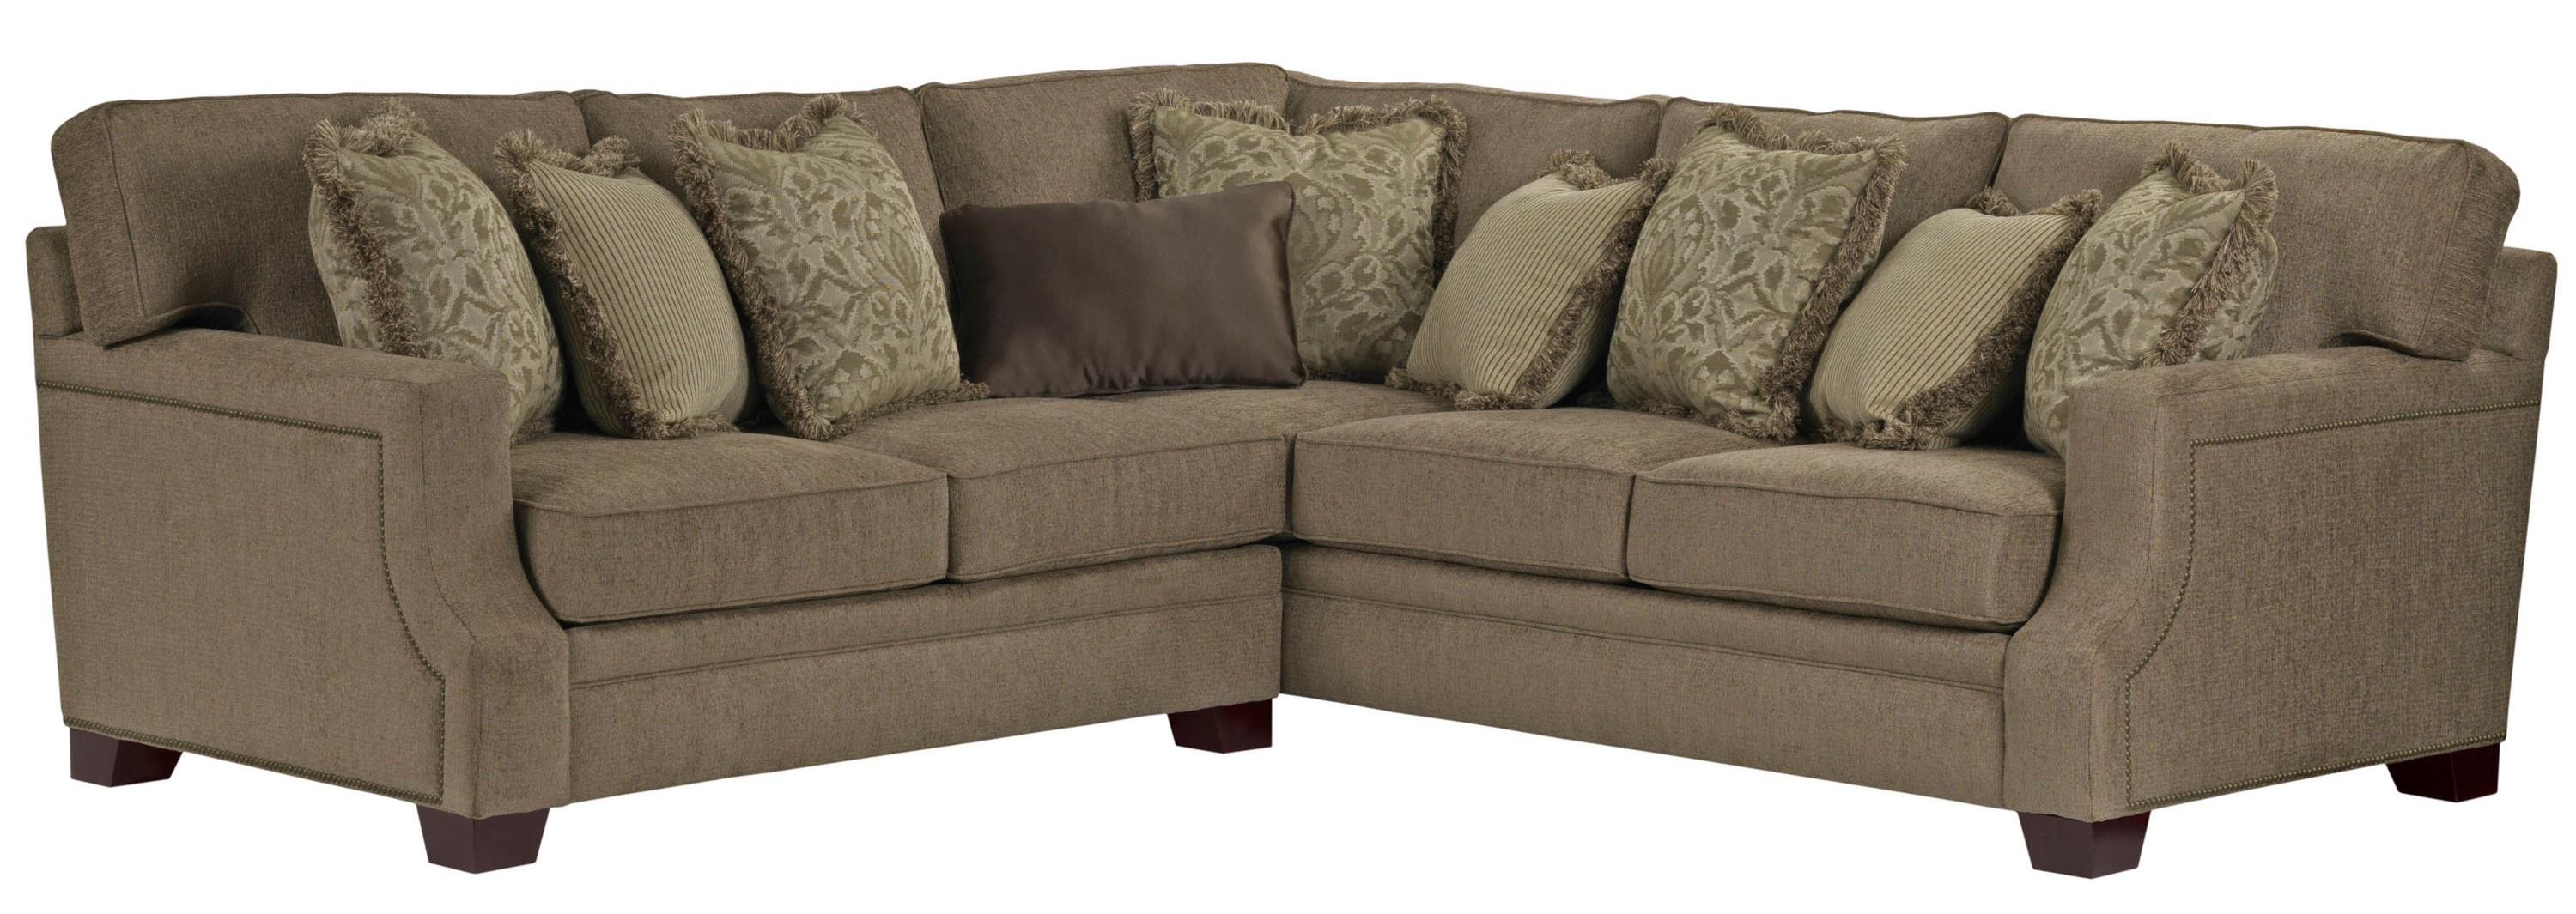 Kayley 2 Piece Corner Sectional By Broyhill Furniture